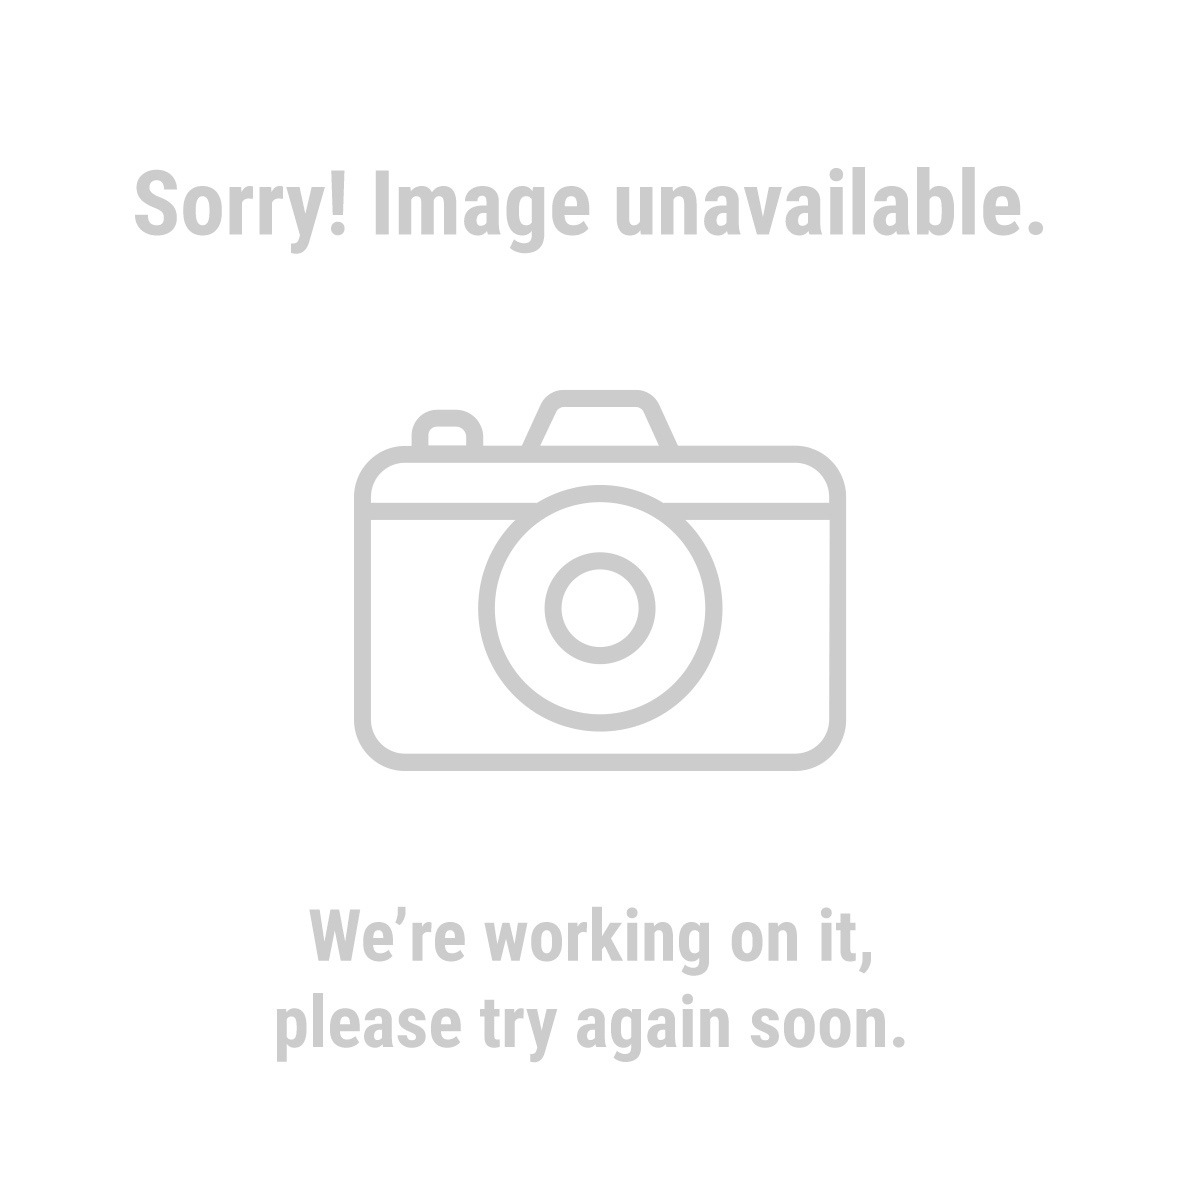 Pacific Hydrostar 65836 Portable Utility Pump